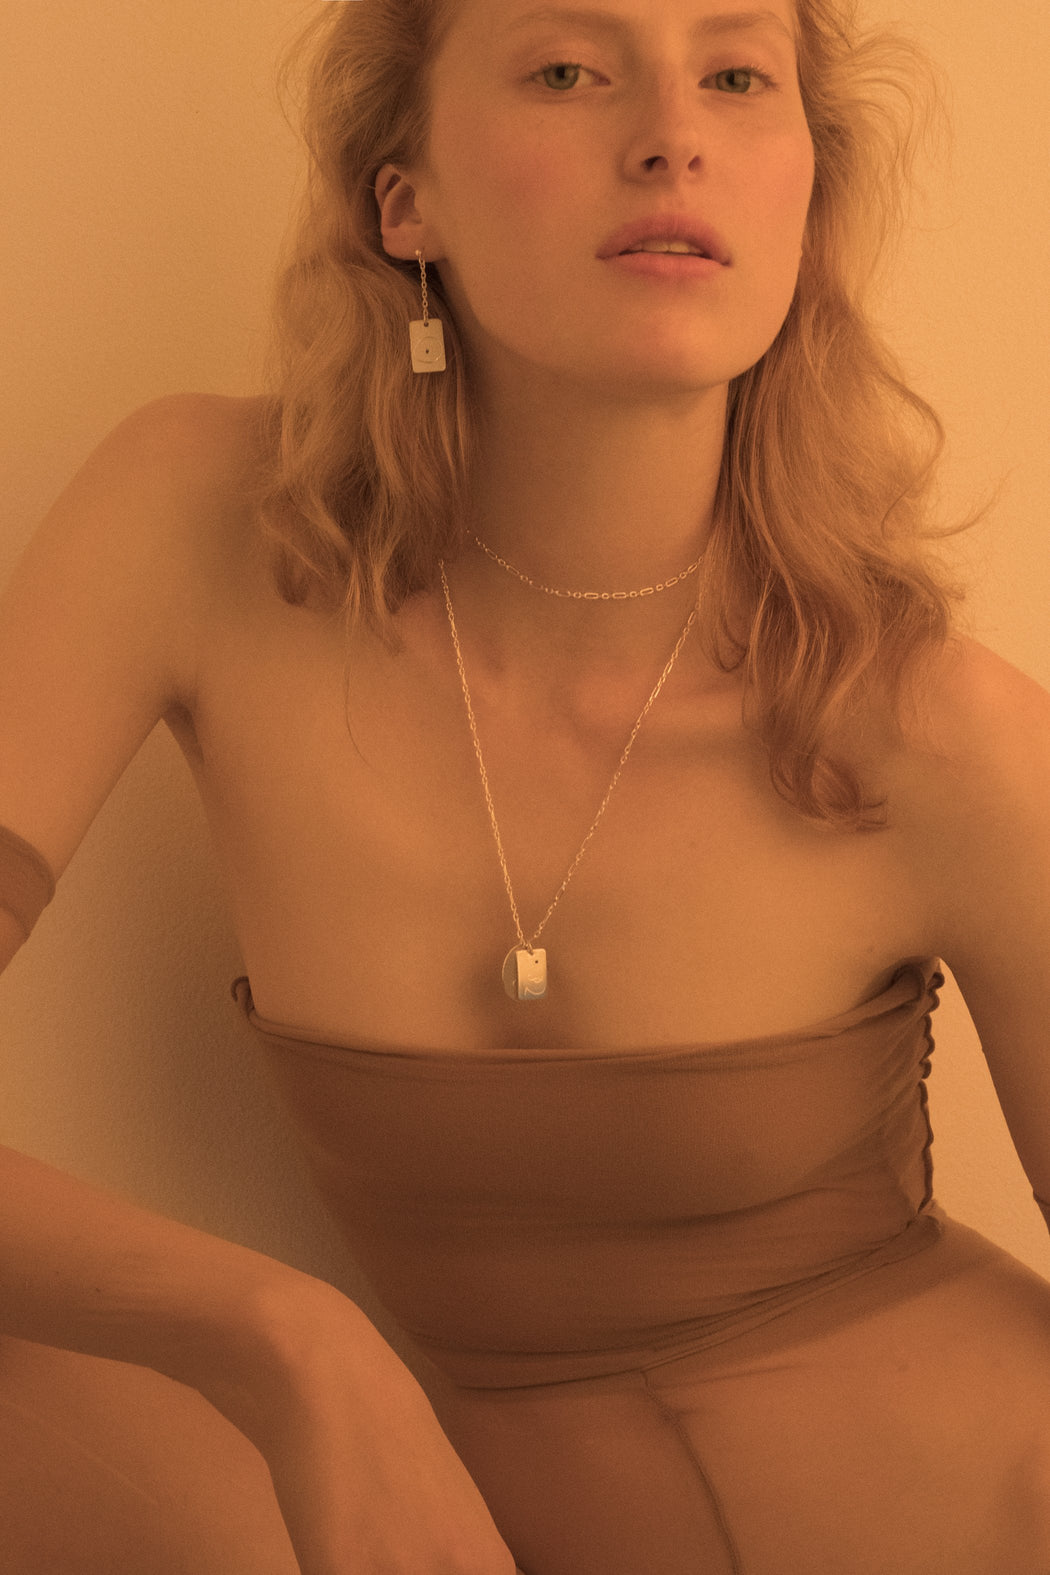 Model wearing gold plated chain doubled around neck. Necklace can be worn long or twice around neck.